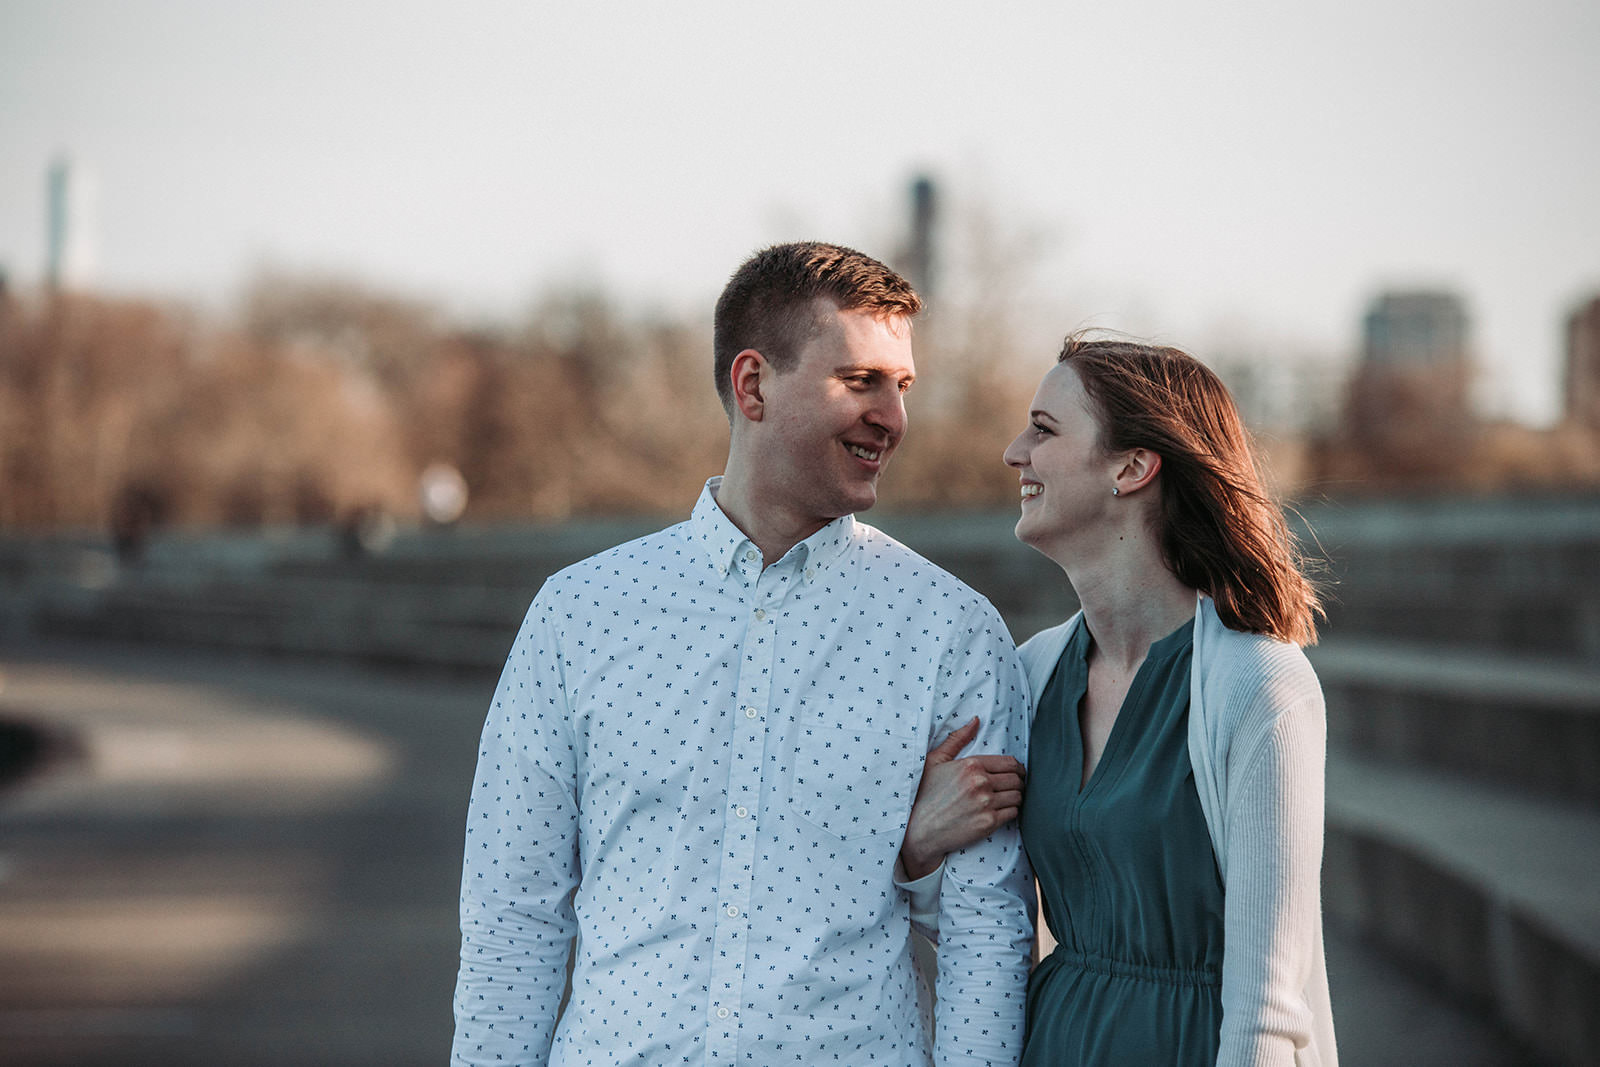 Downtown_chicago_spring_engagement_session-45.jpg